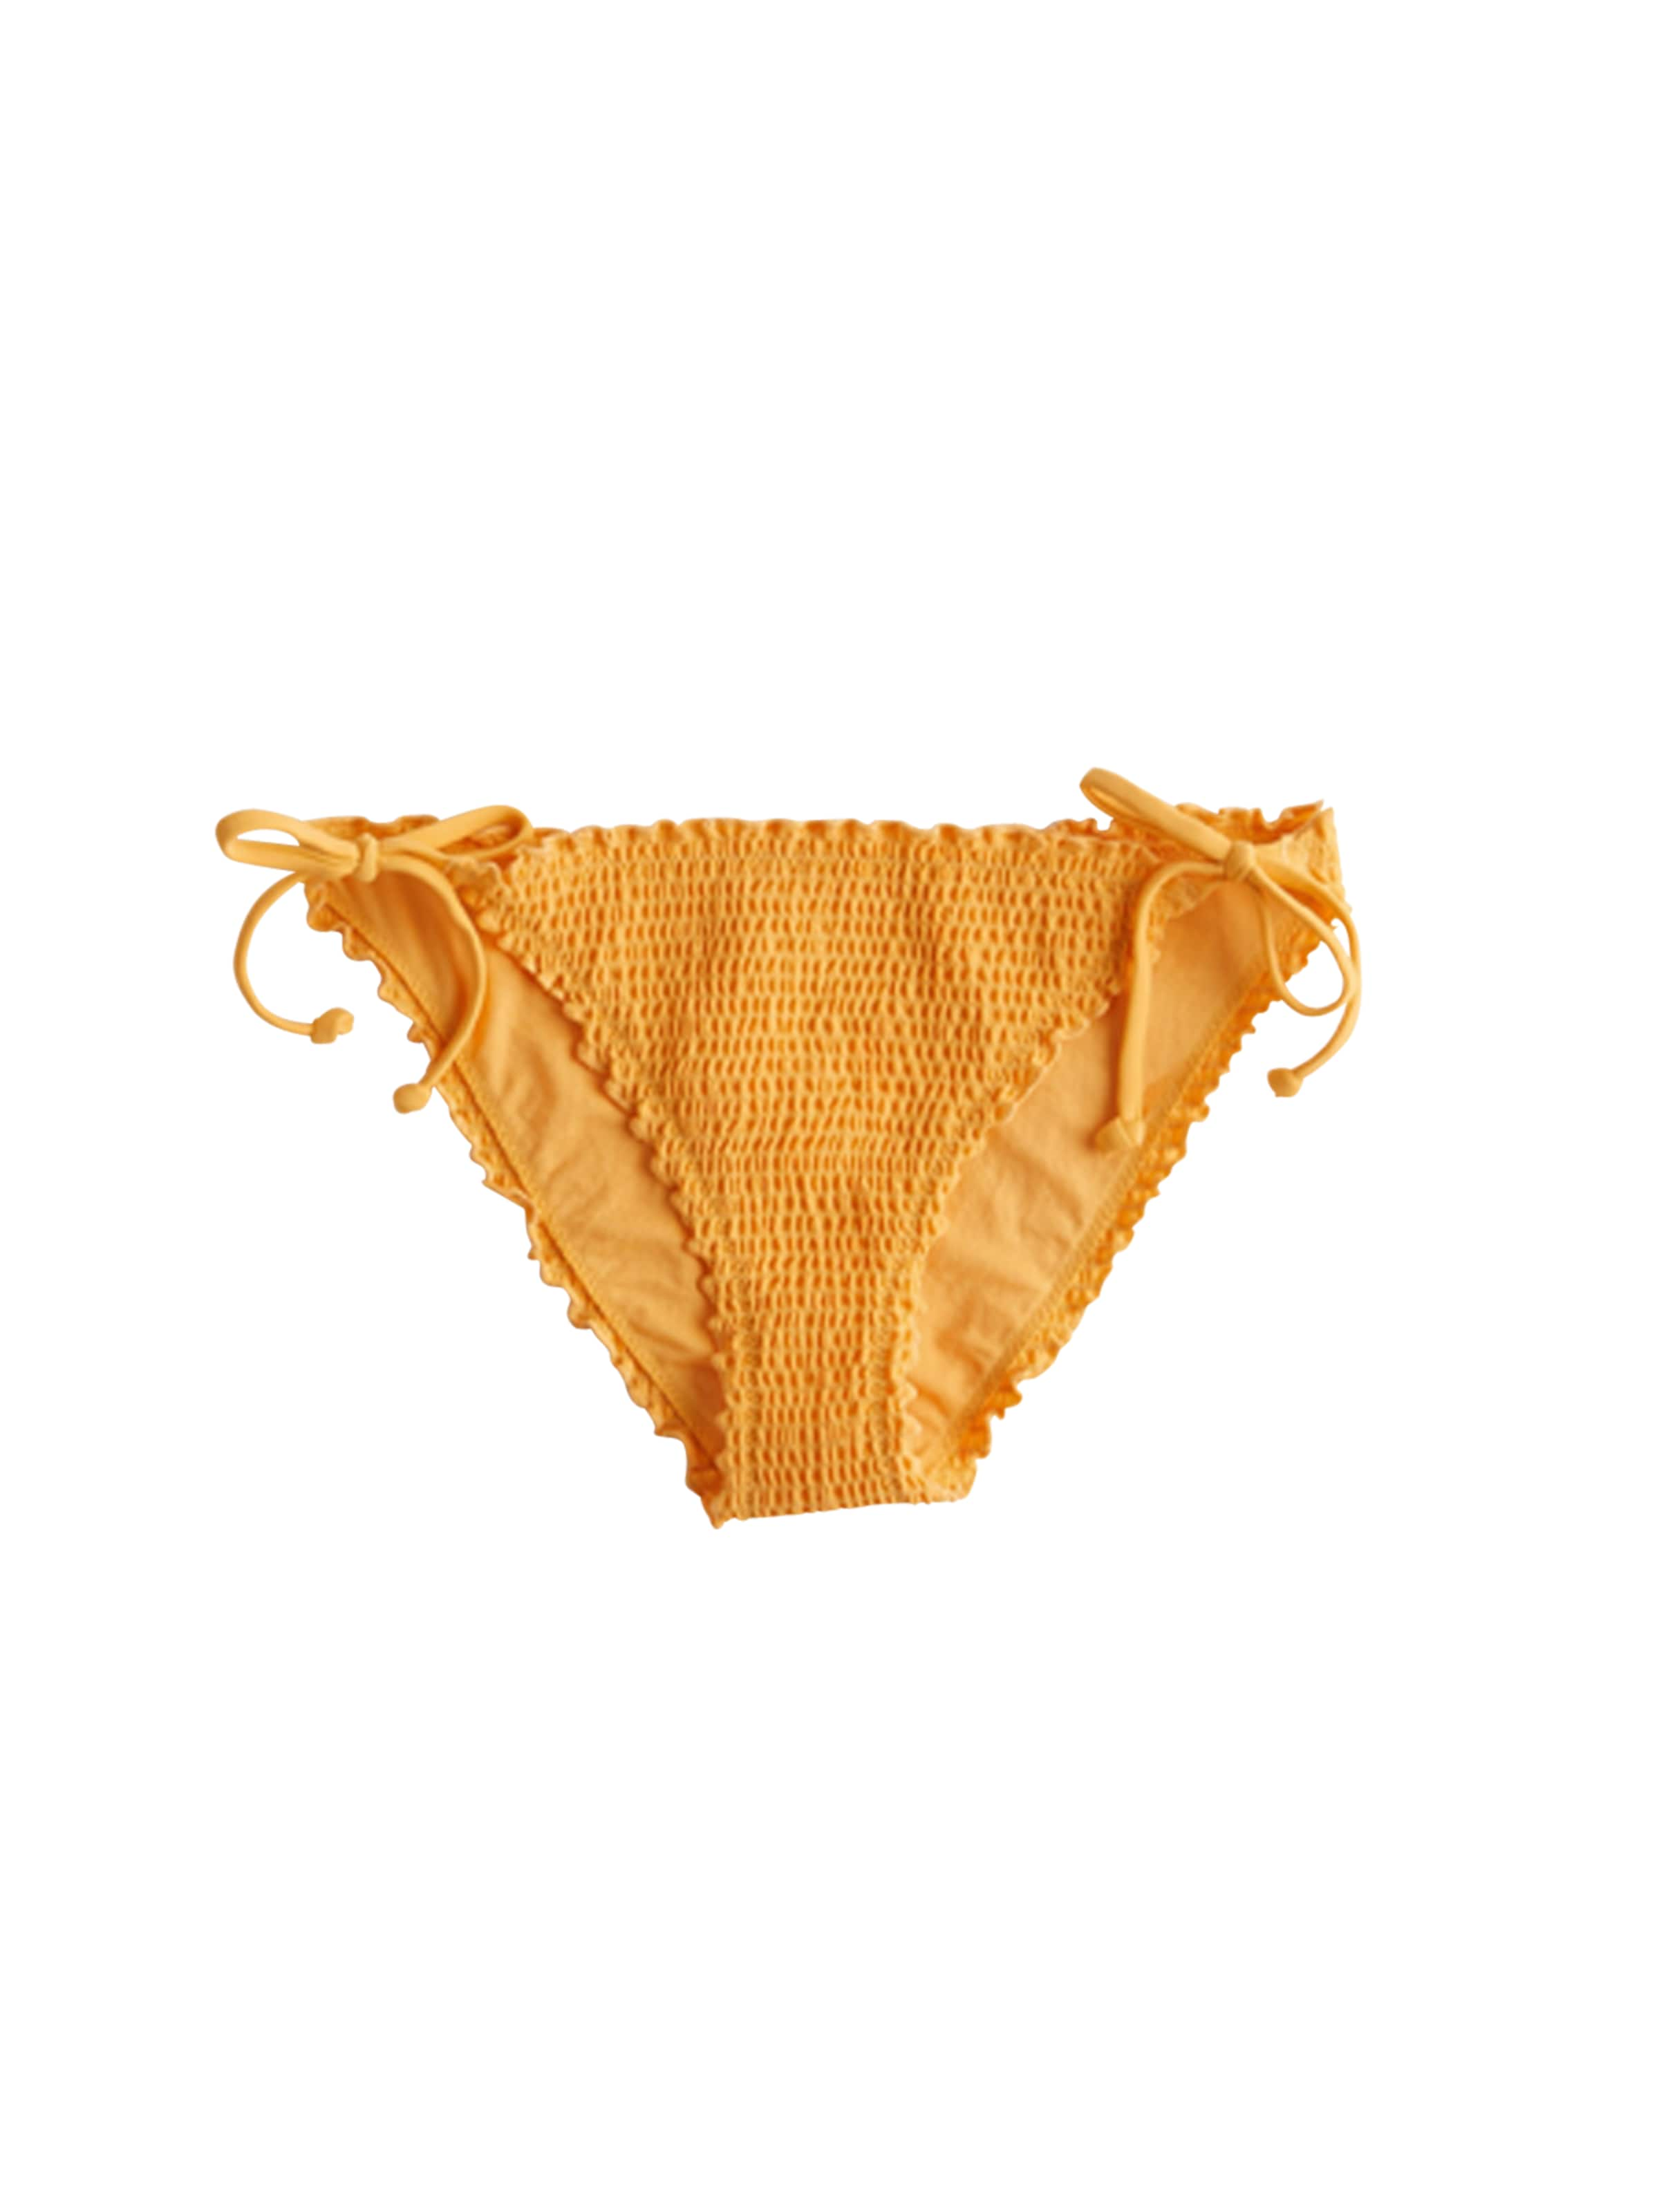 Cheeky Hollister Tie Bikinihose Orange In Side 5cc' 'smock Ruffle QxBthrdsC